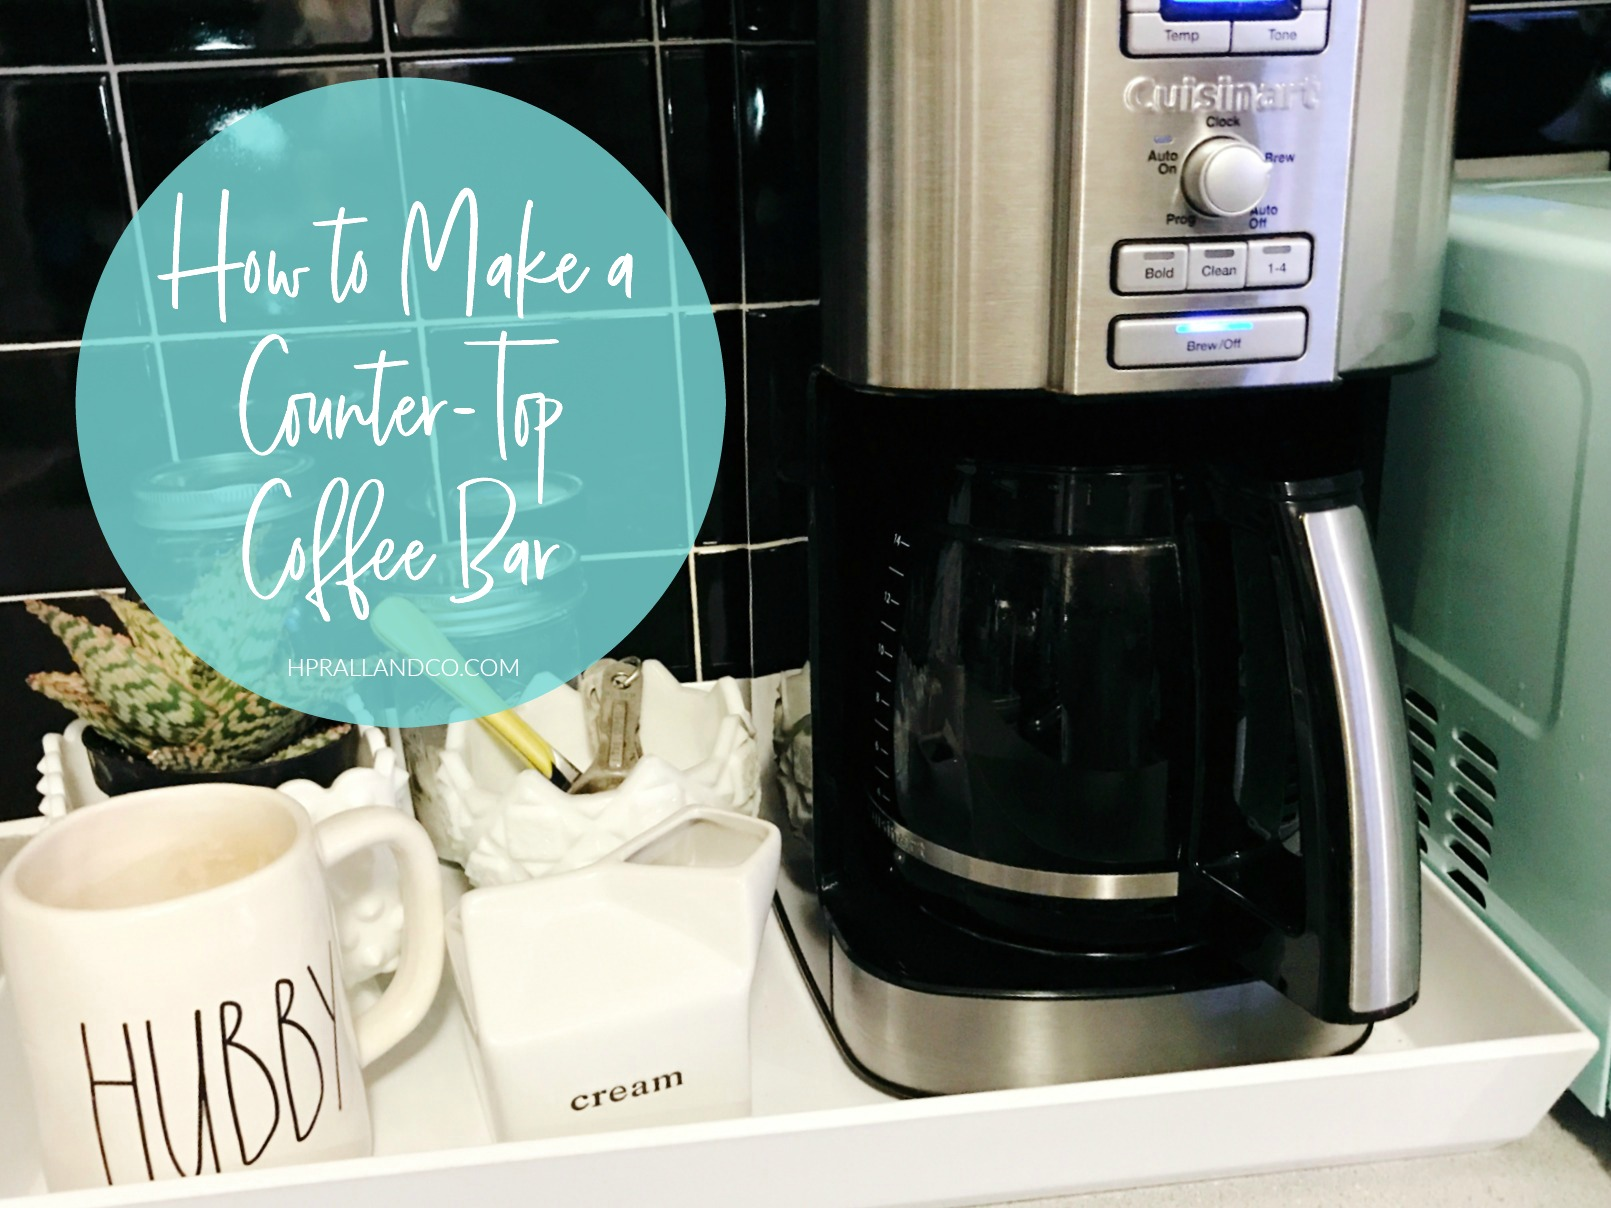 How to Make a Counter-Top Coffee Bar from hprallandco.com